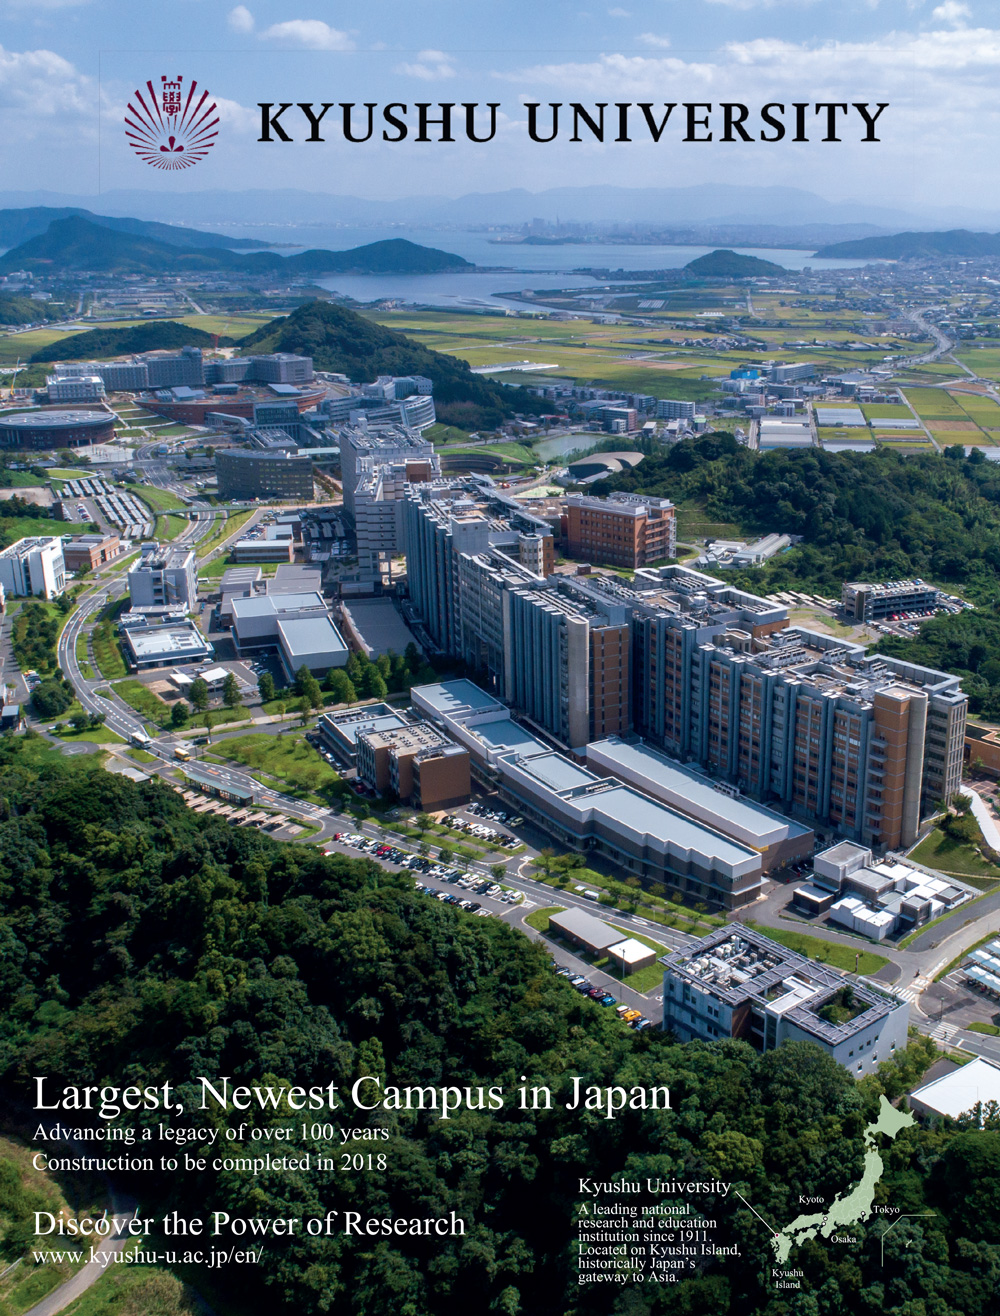 Kyushu University campuses are surrounded by open space and beautiful scenery.